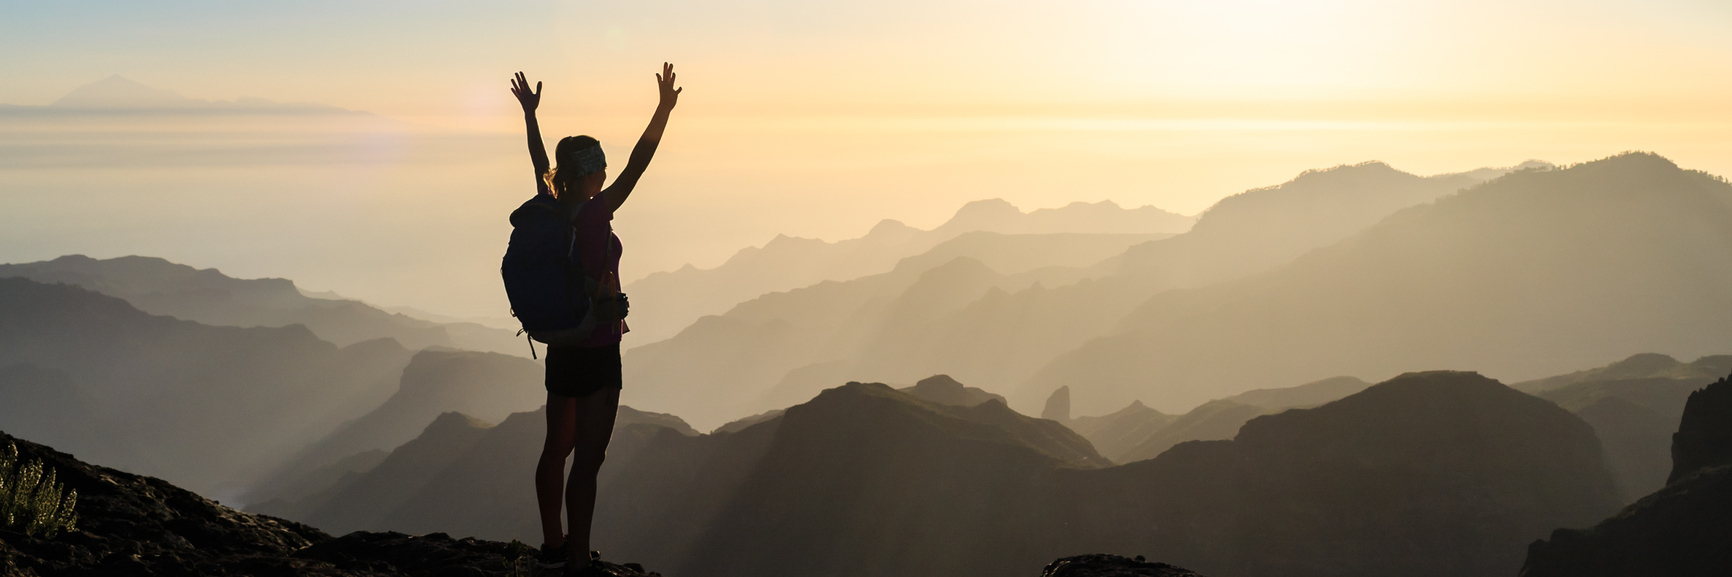 woman standing on the top of a mountain at sunrise with her arms outstretched